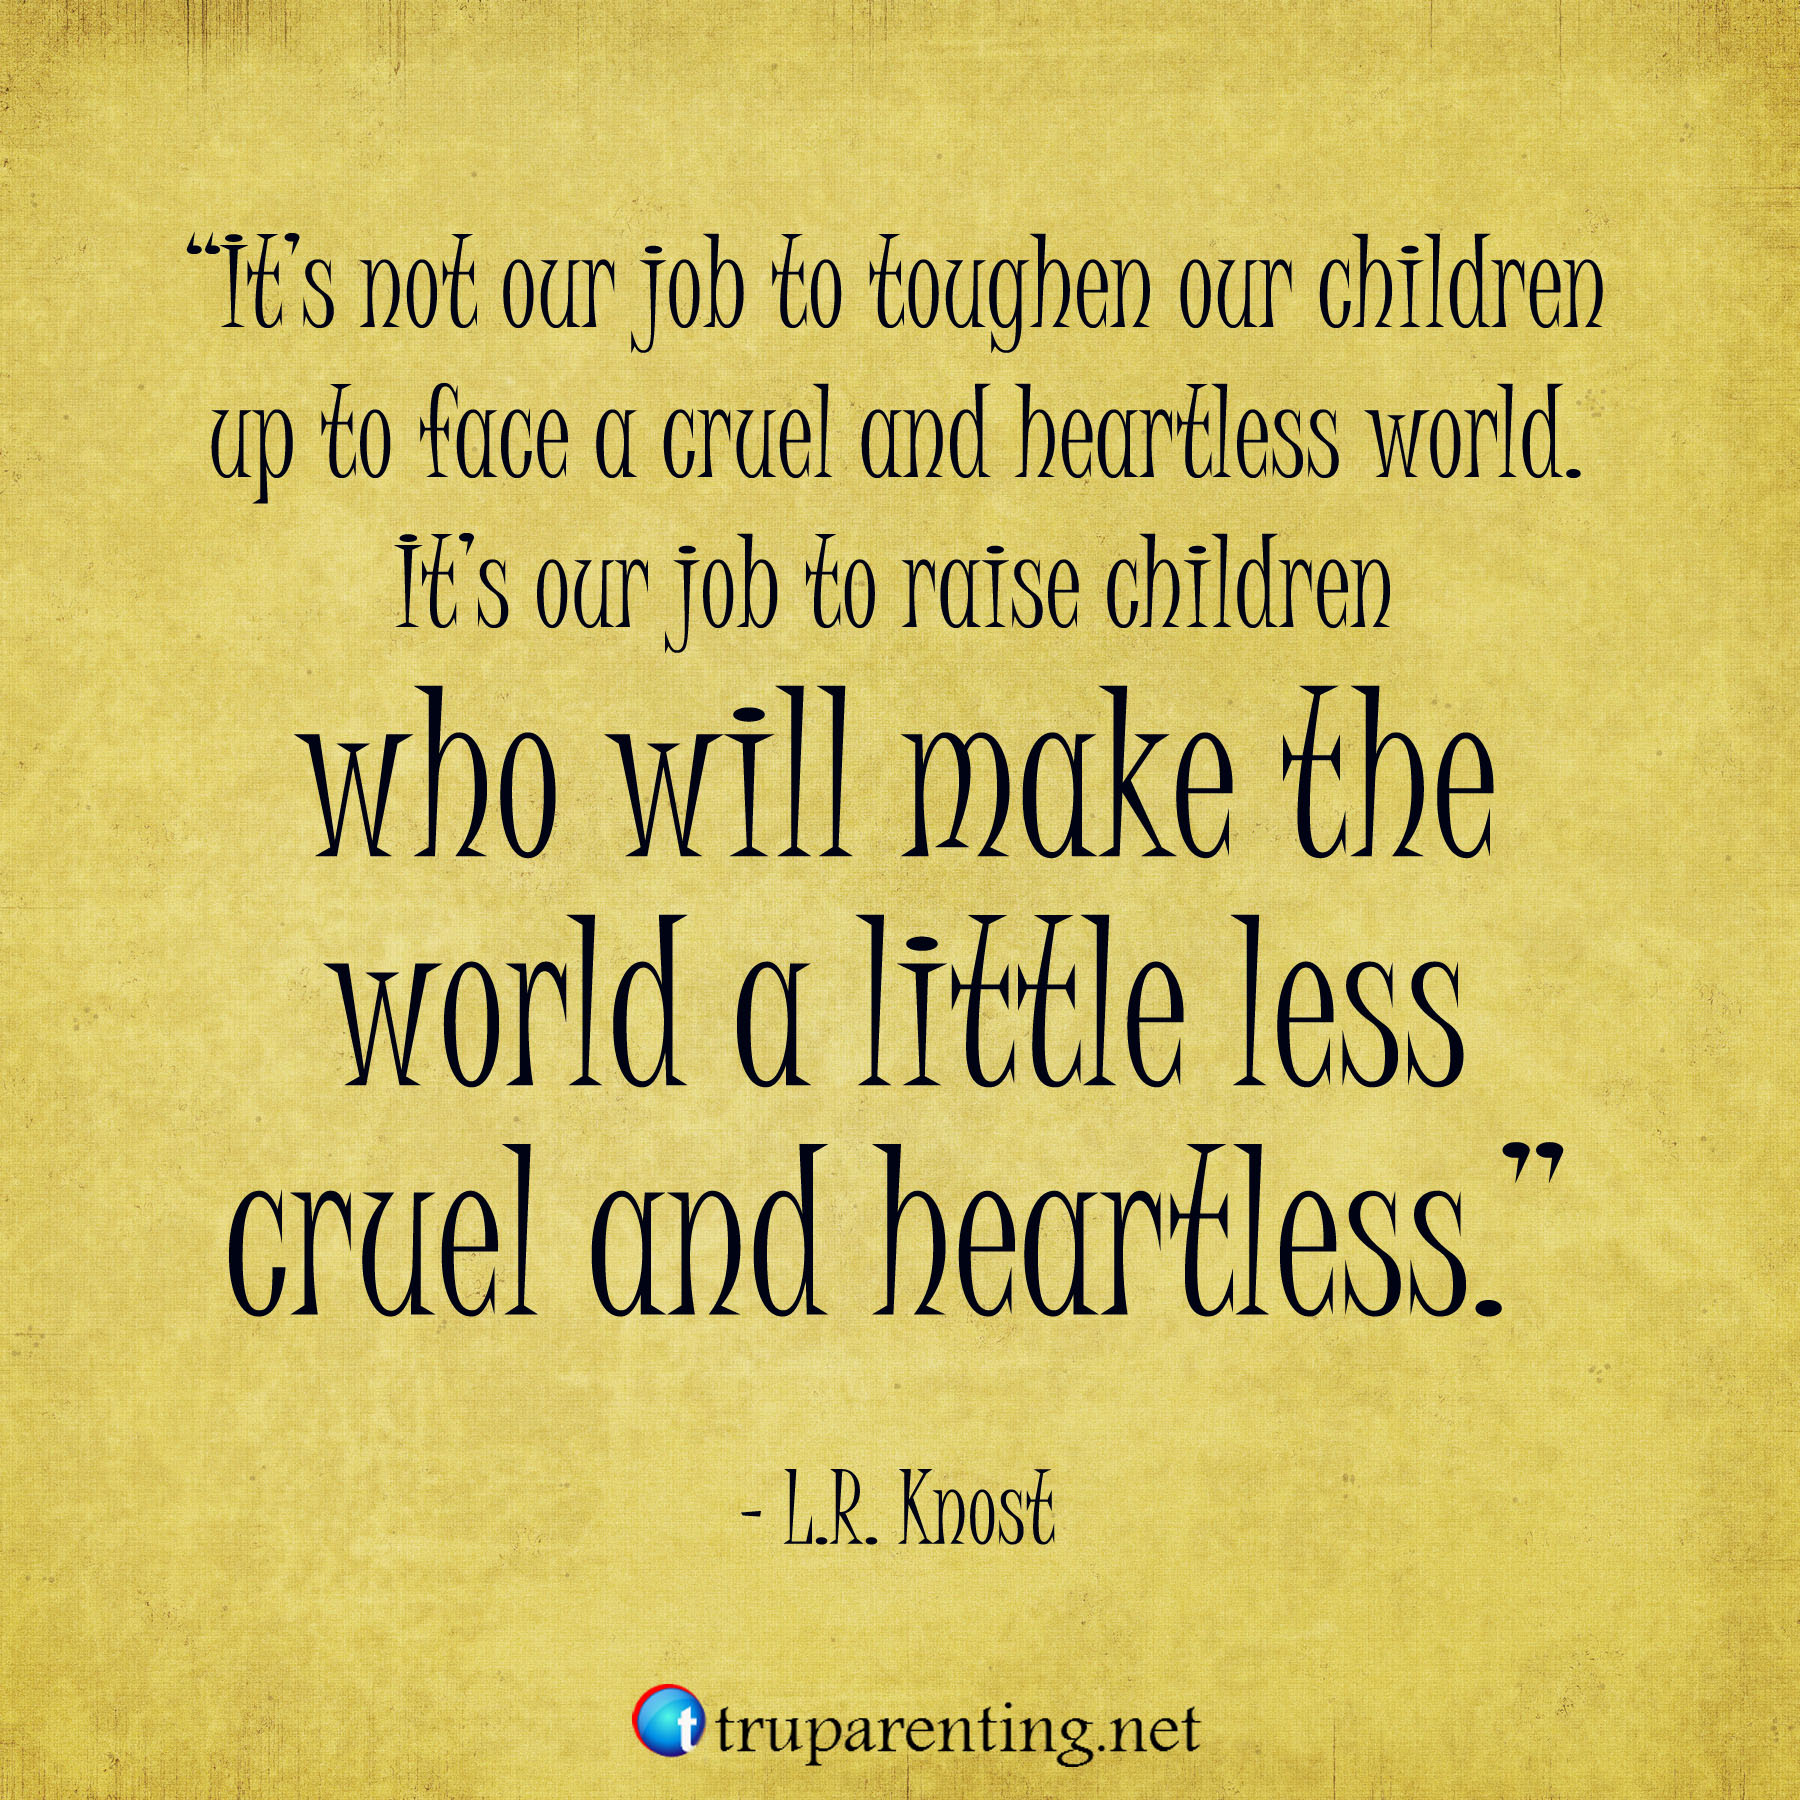 Inspirational Quotes For Children From Parents: 30 Inspiring Parenting Quotes That Teach TRU Parenting